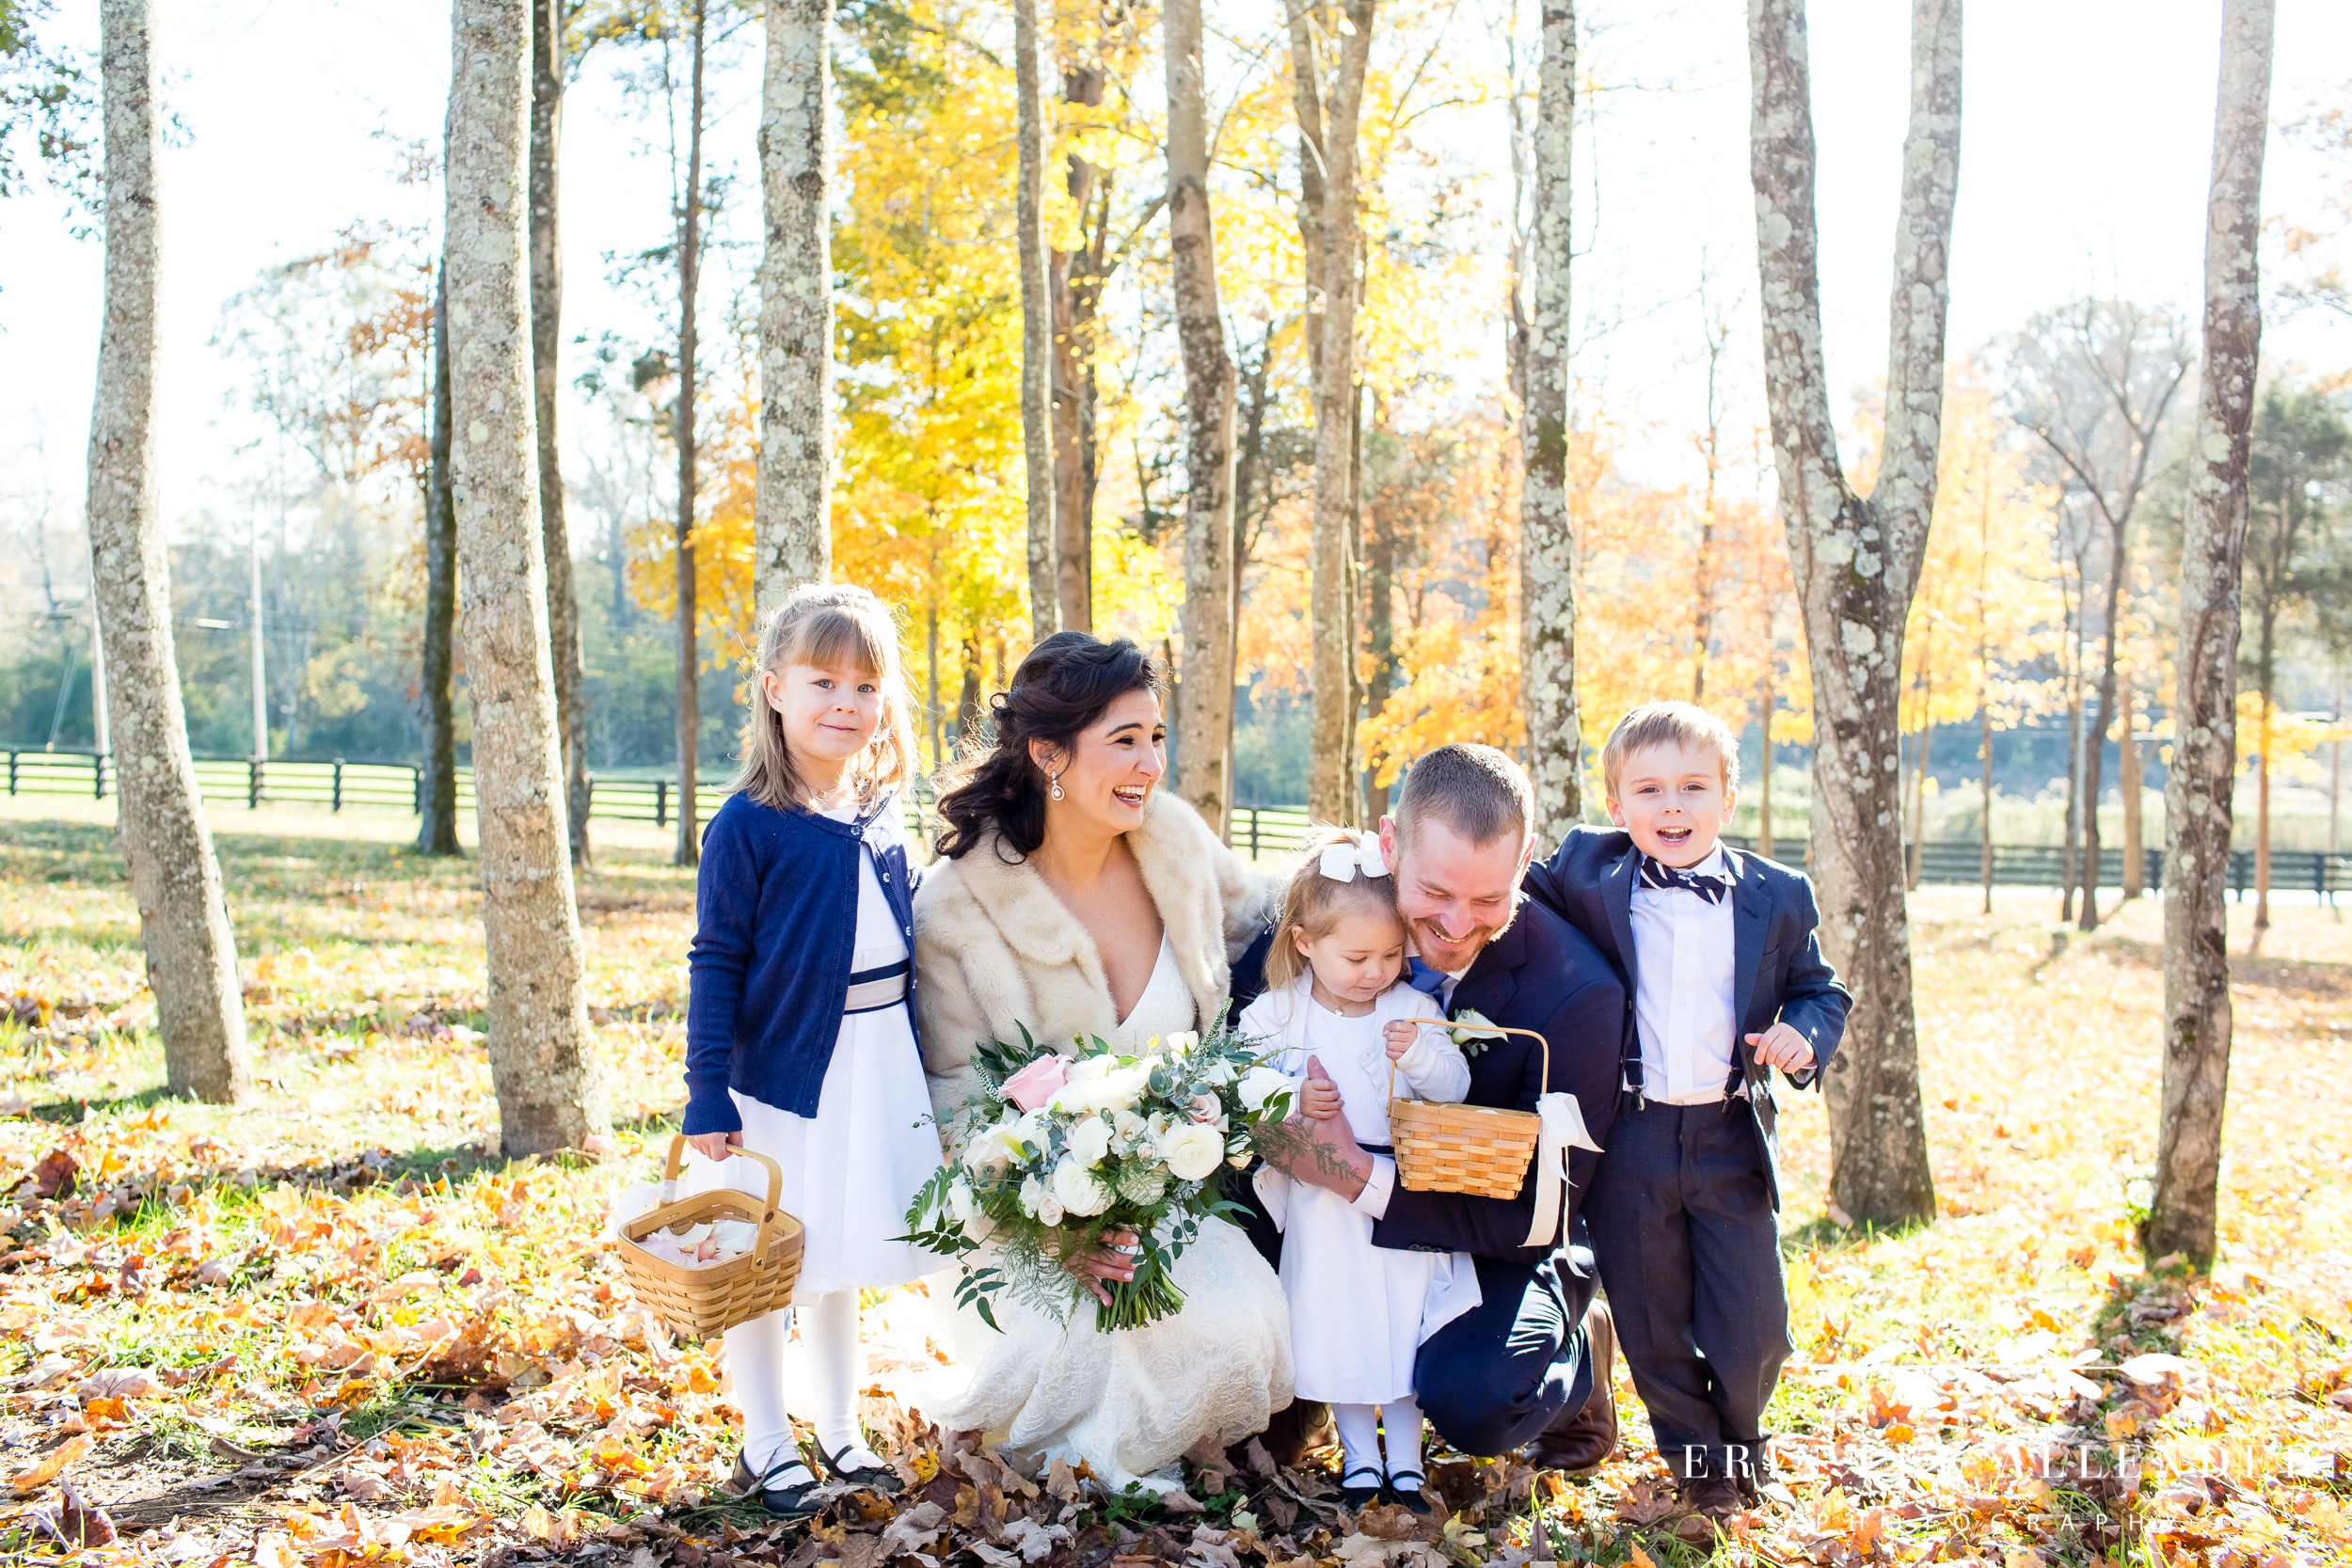 bride-groom-with-flower-girls-ring-bearer